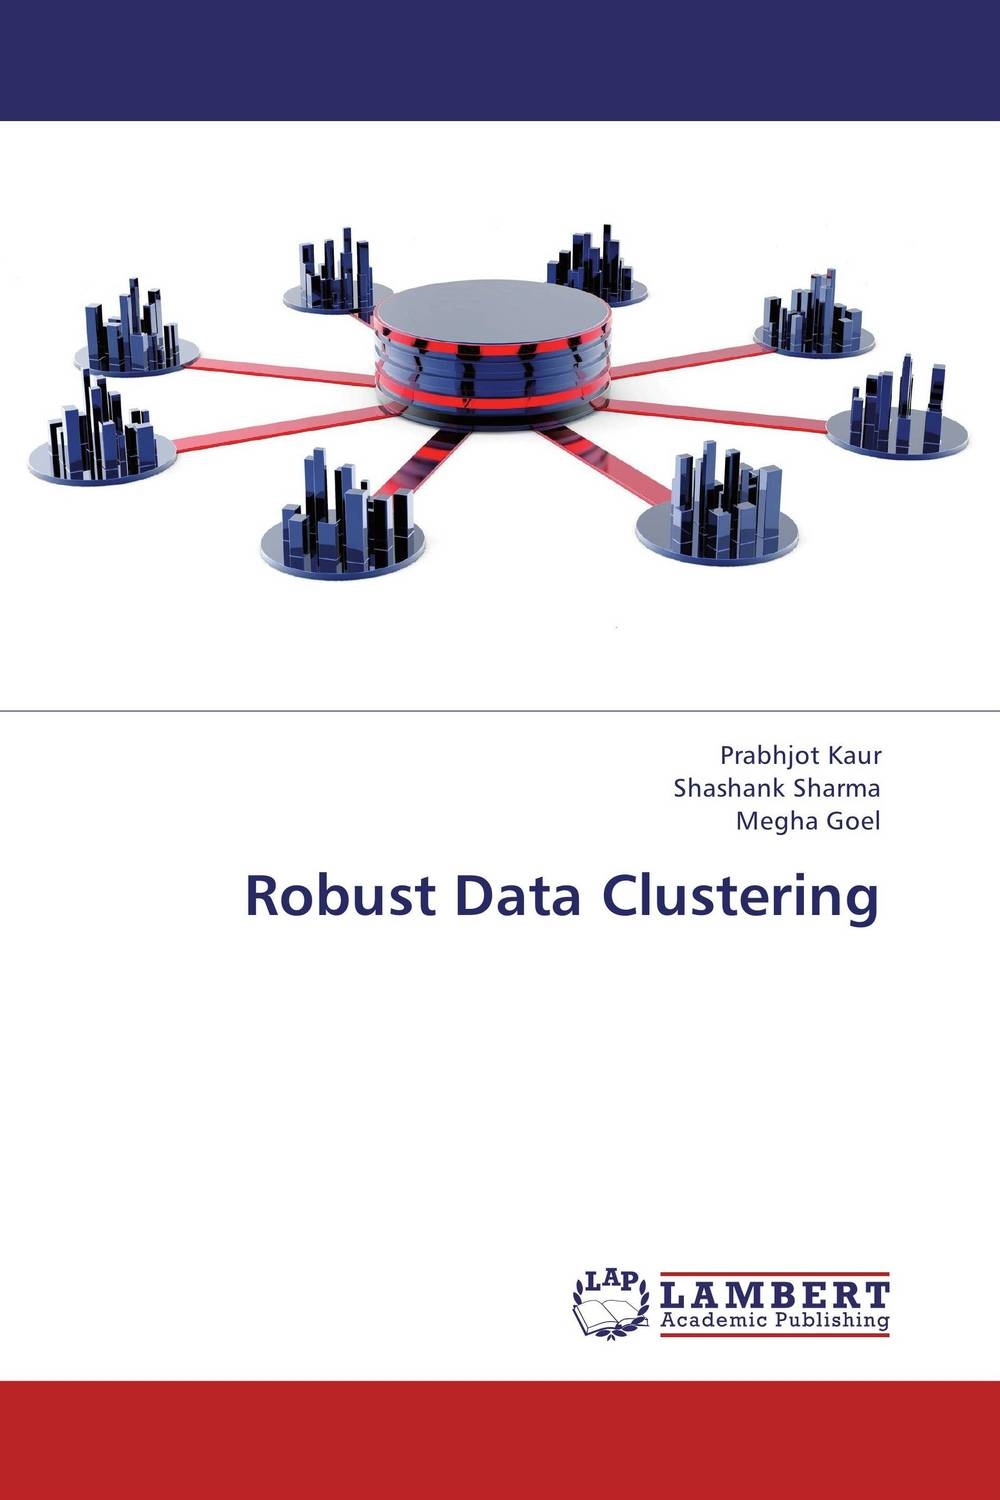 Robust Data Clustering clustering information entities based on statistical methods